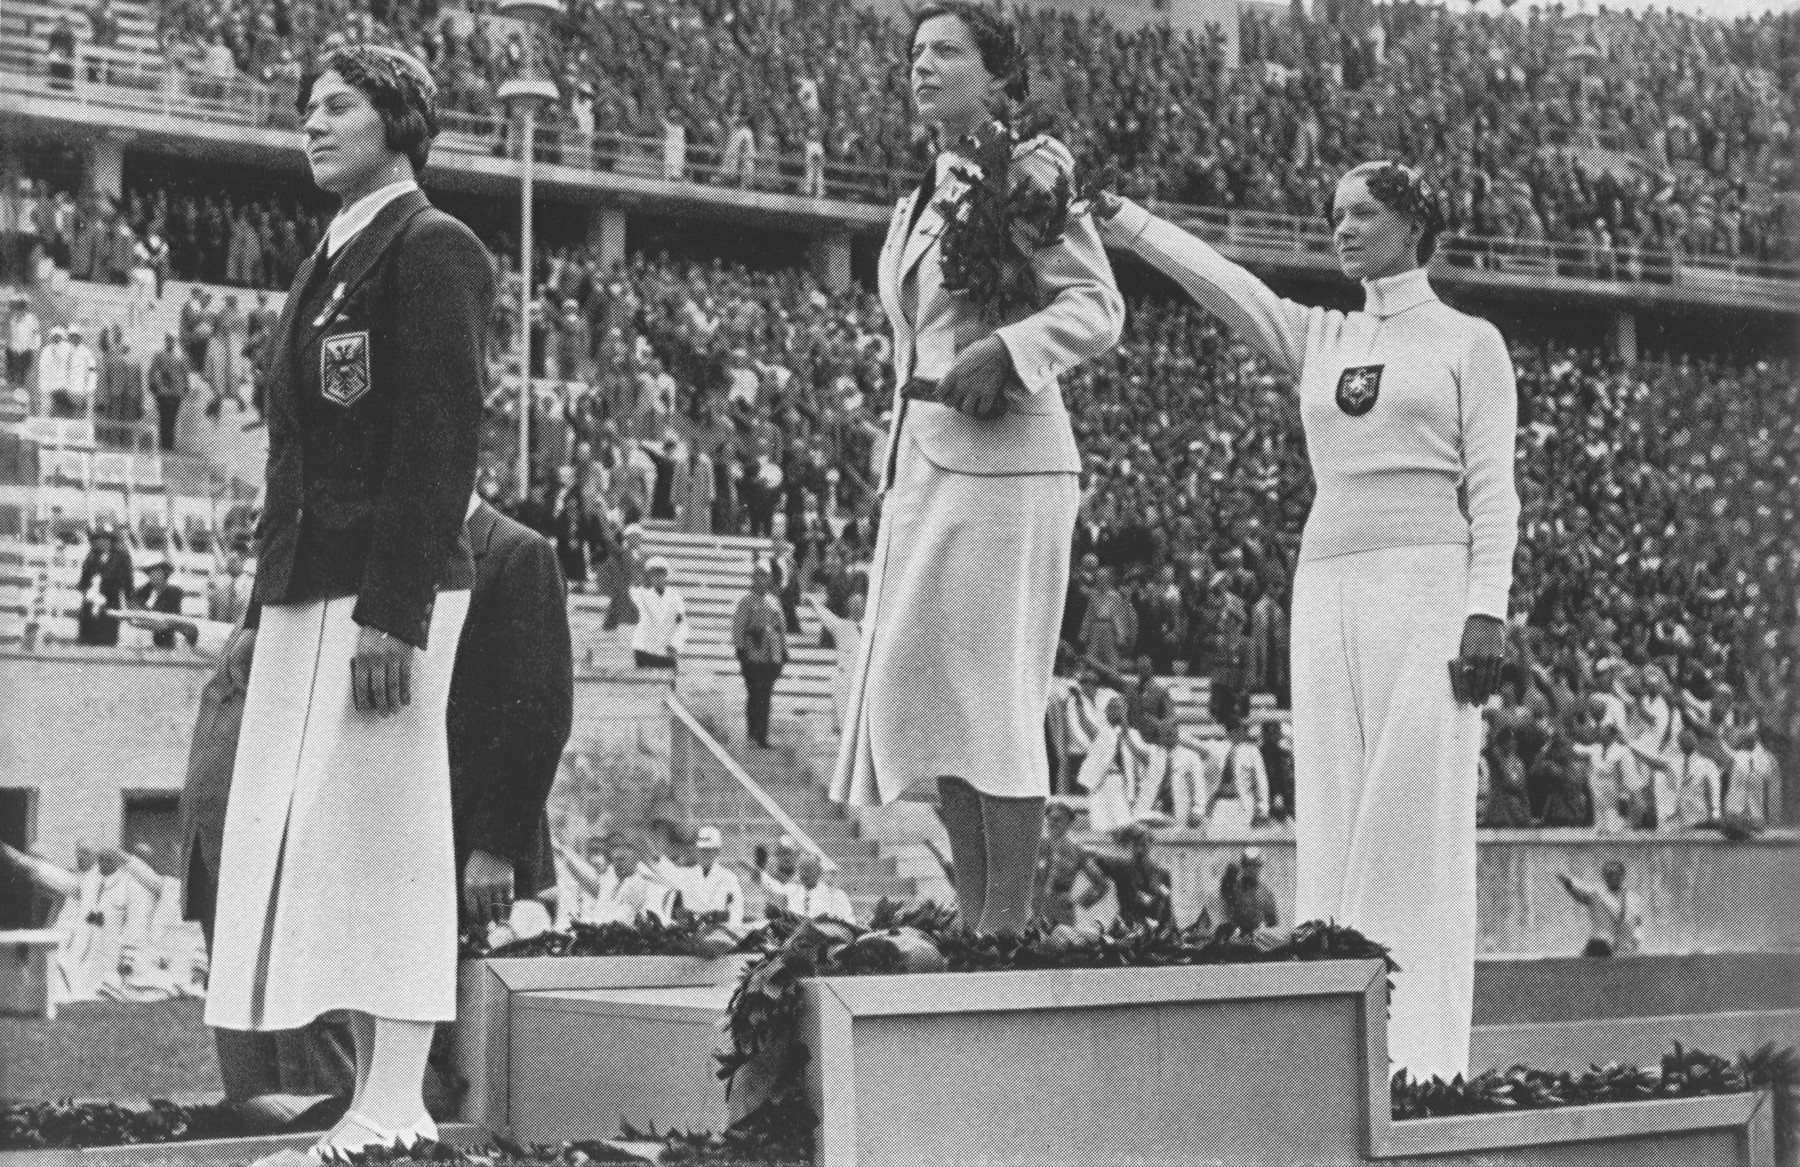 The awarding of medals for fencing at the 1936 Berlin Olympic games.   The Gold medalist was Ilona Schacherer of Hungary, the Silver medalist Helene Mayer of Germany, and the Bronze medalist Ellen Preis of Austria.  Mayer, a championship fencer, was a half-Jewish German  residing in the United States and was allowed to join the German team only after American diplomatic pressure.